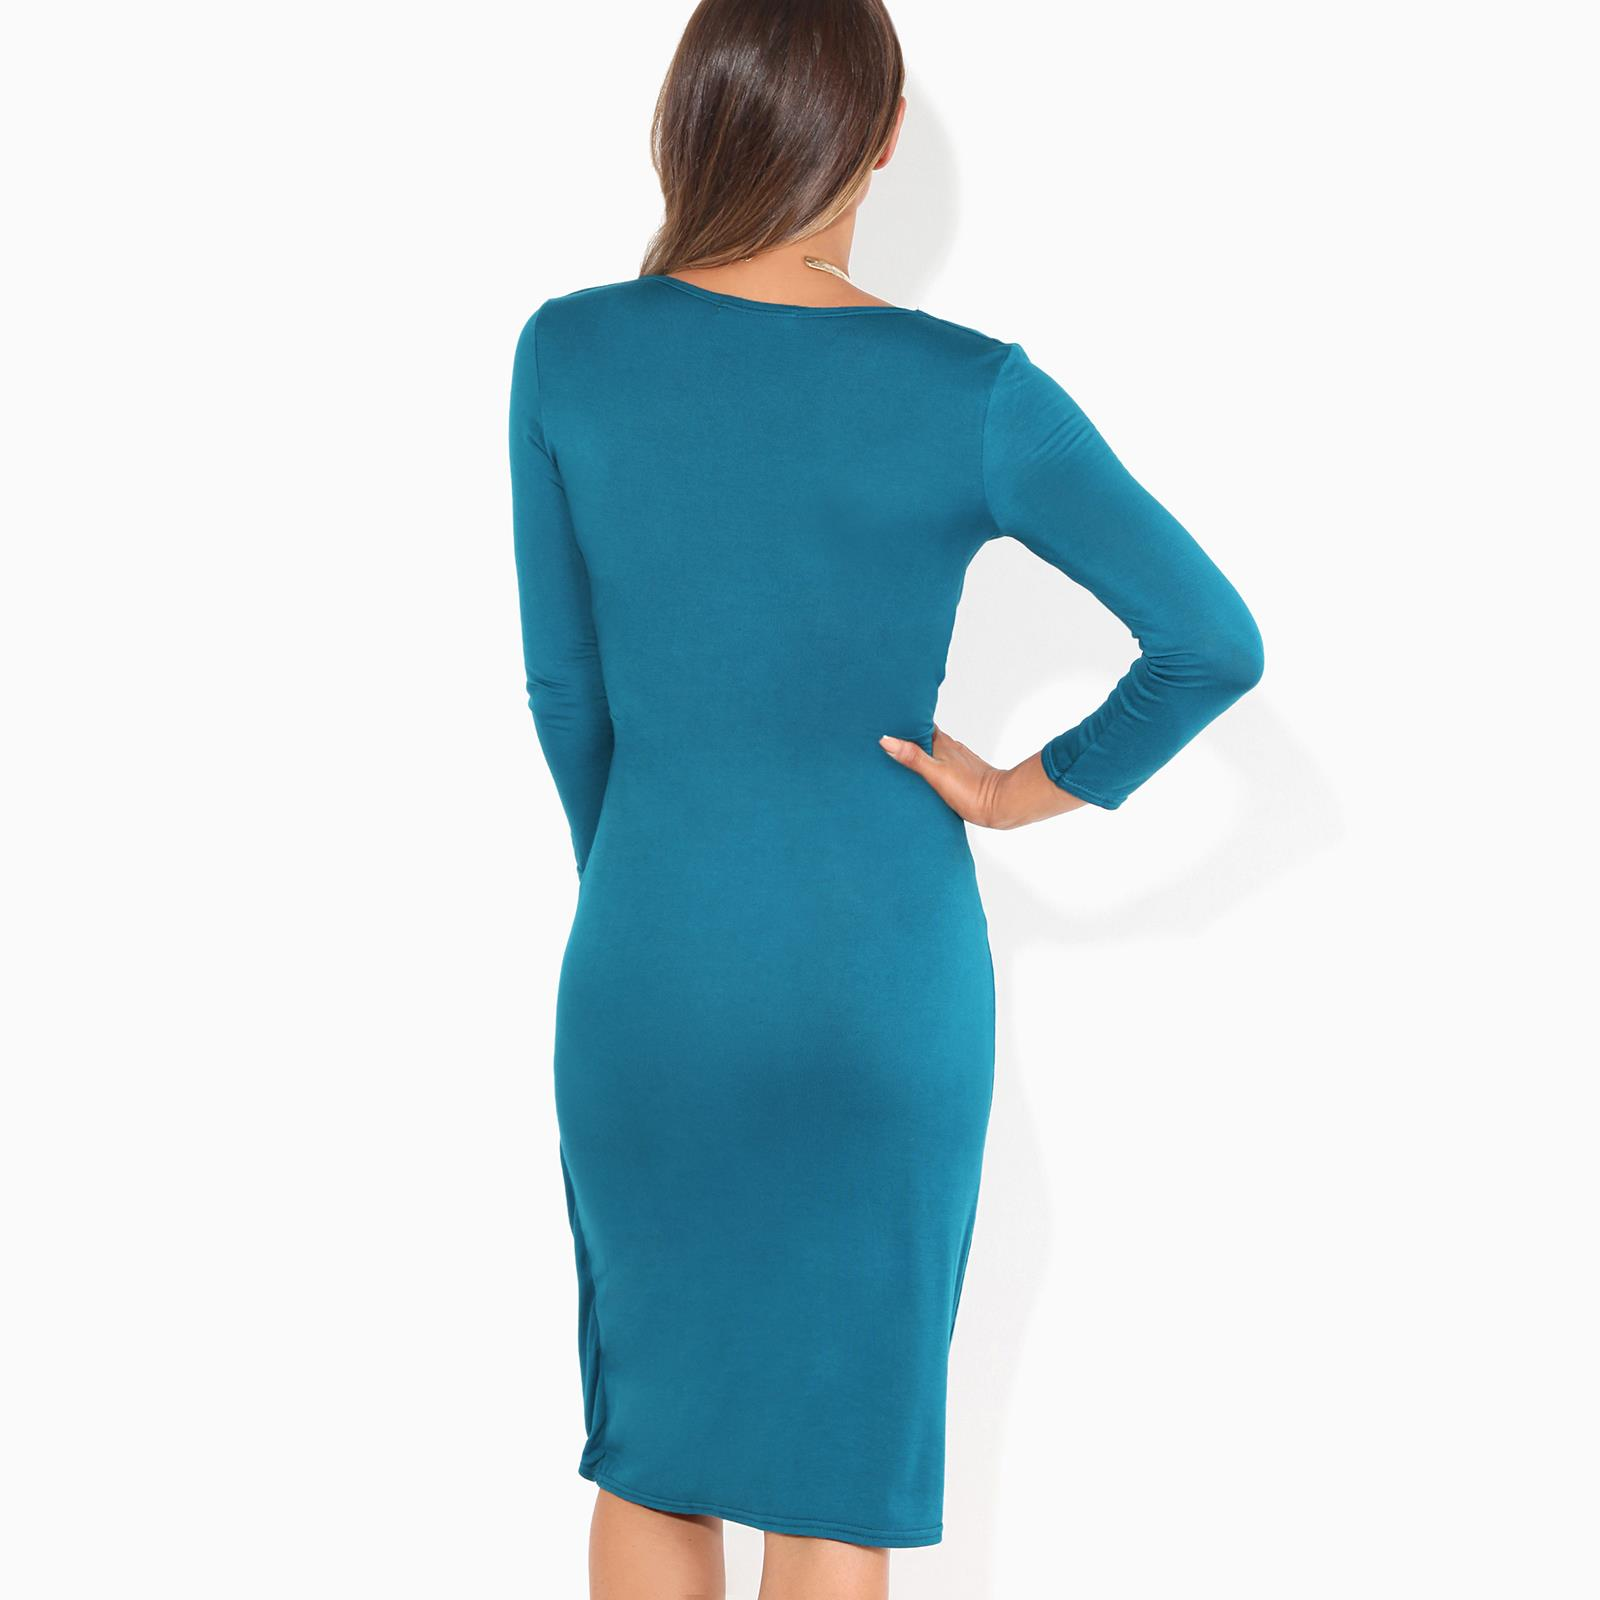 Womens-Ladies-Shift-Wrap-Dress-Midi-Knee-Long-Quarter-Sleeve-Sexy-Solid-Party thumbnail 31